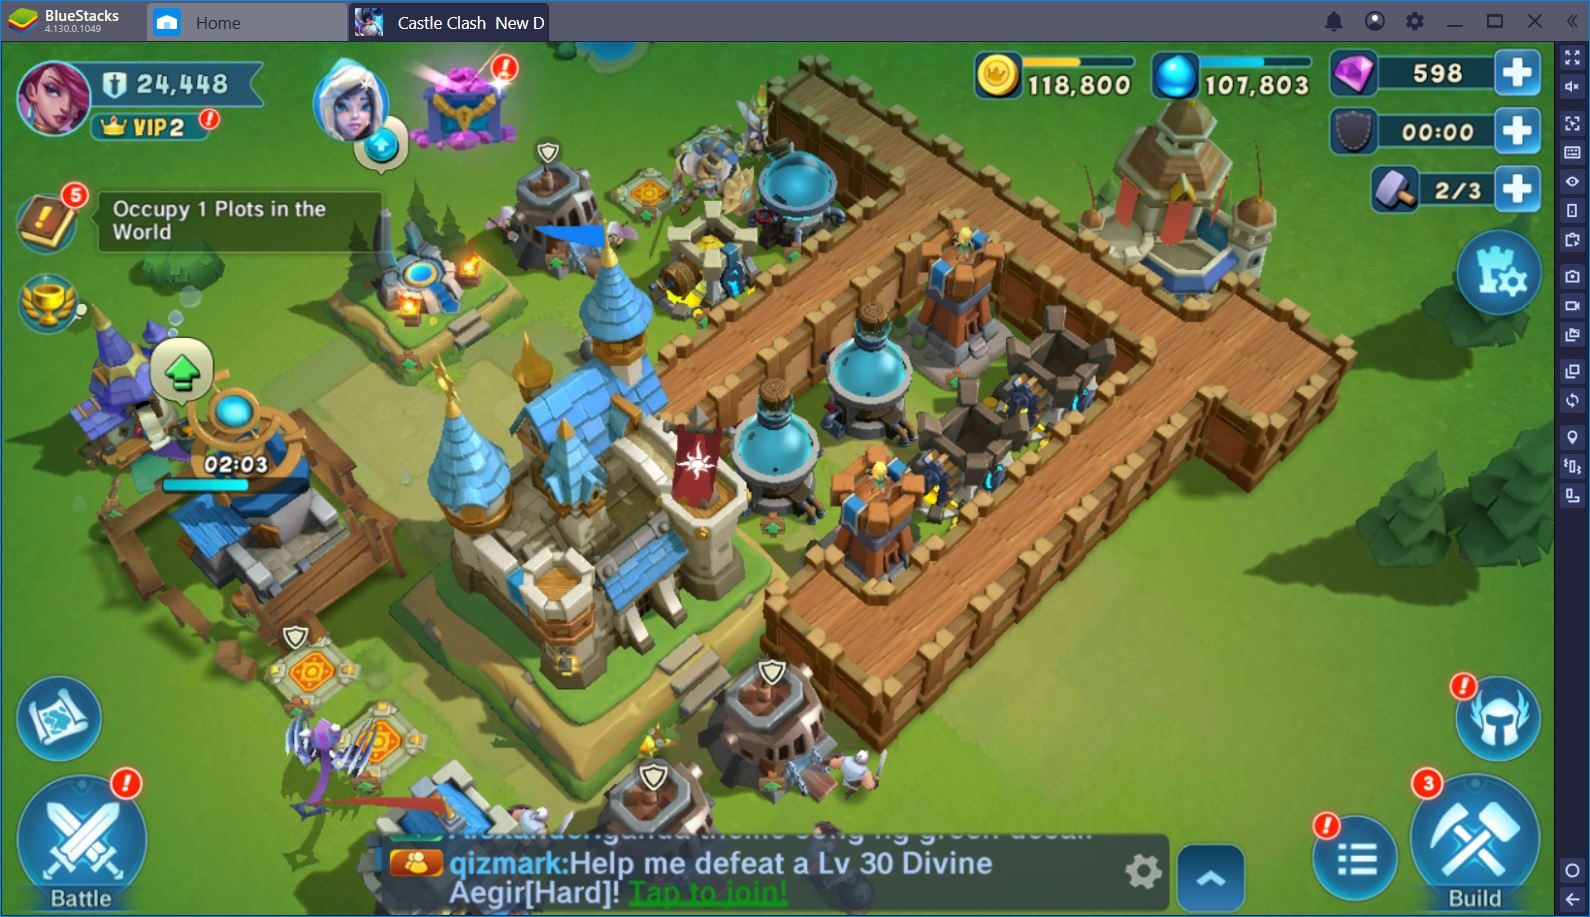 Castle Clash: New Dawn – How to Build a Stronger Base